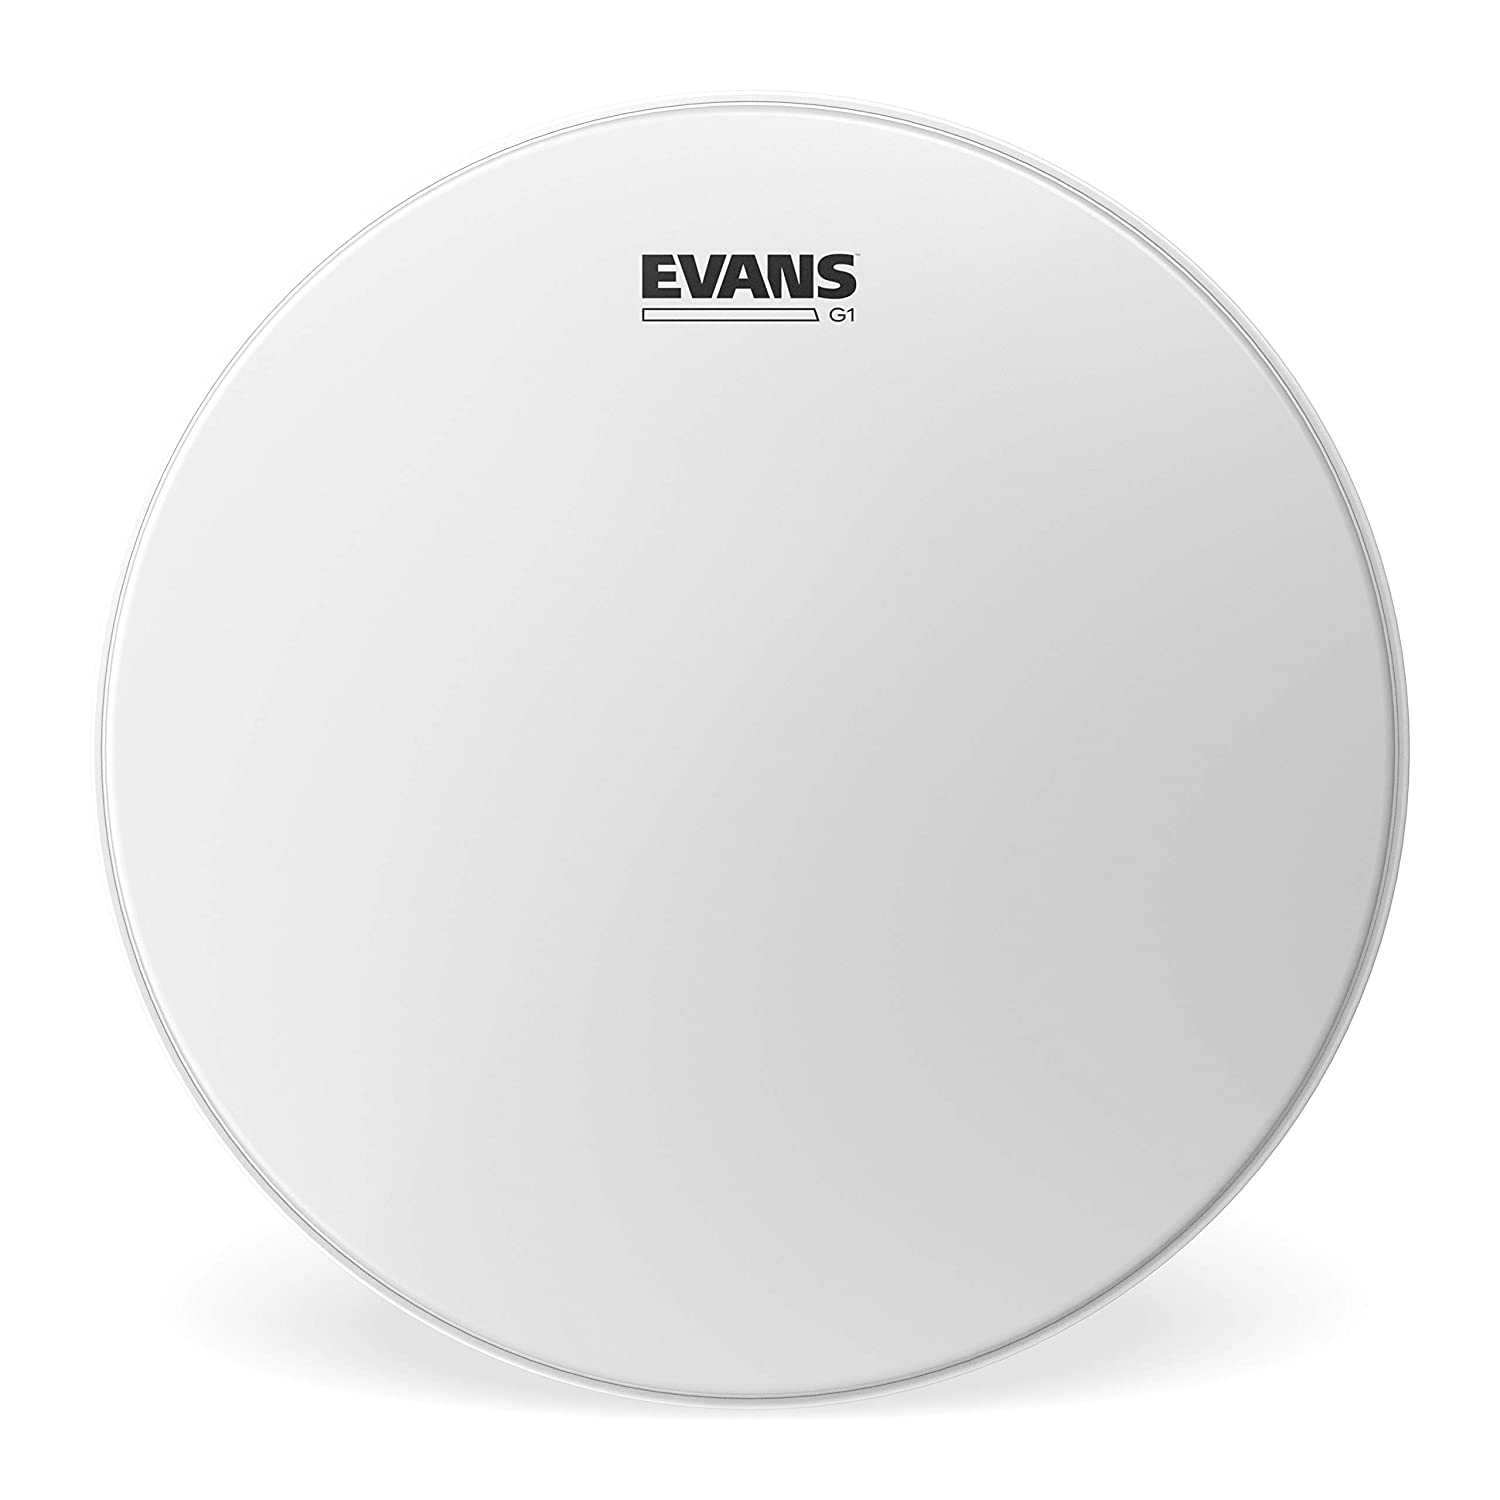 B0002D0DA2 Evans G1 Coated Drum Head, 14 Inch 71J99aAQWBL